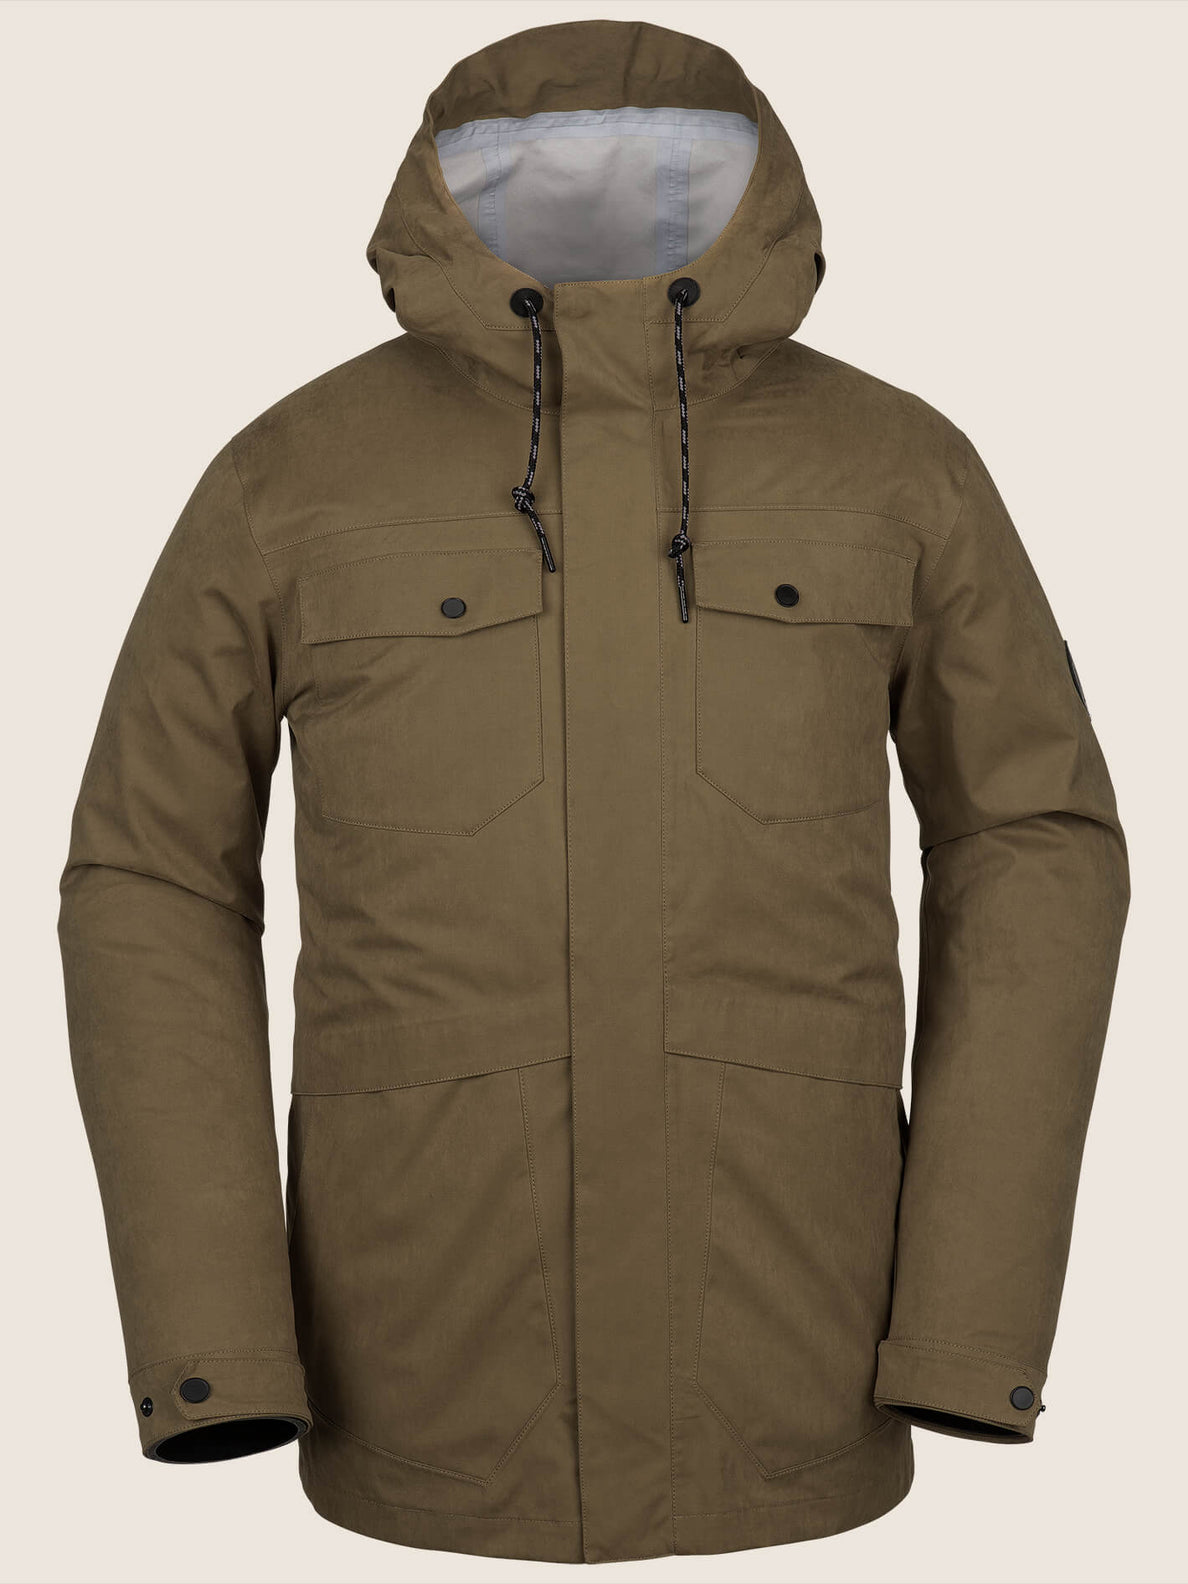 V.co 3L Rain Jacket In Moss, Front View